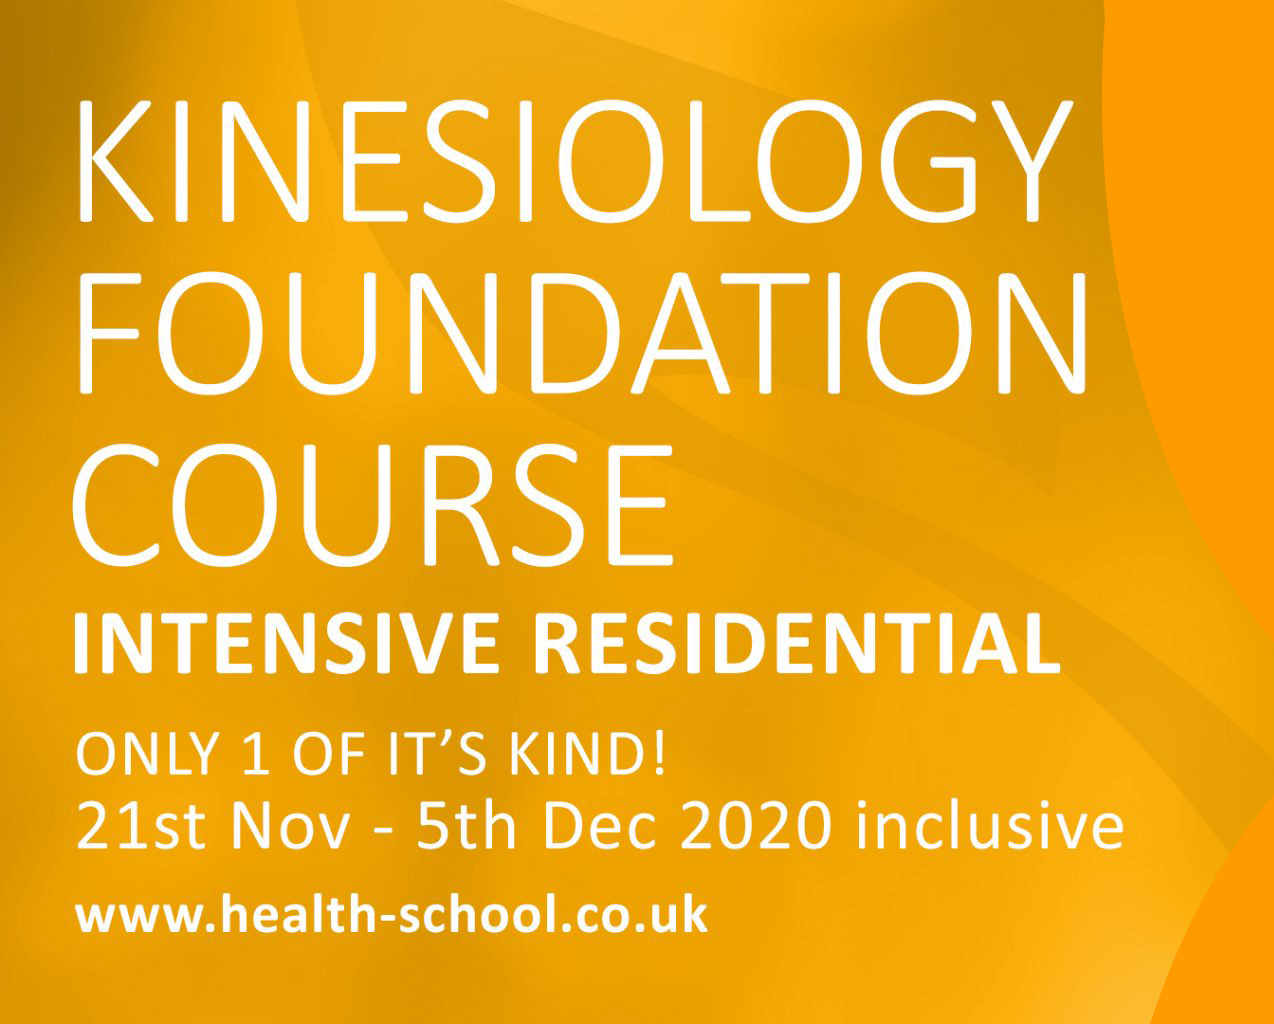 Early Bird Kinesiology Foundation Course – Residential Intensive